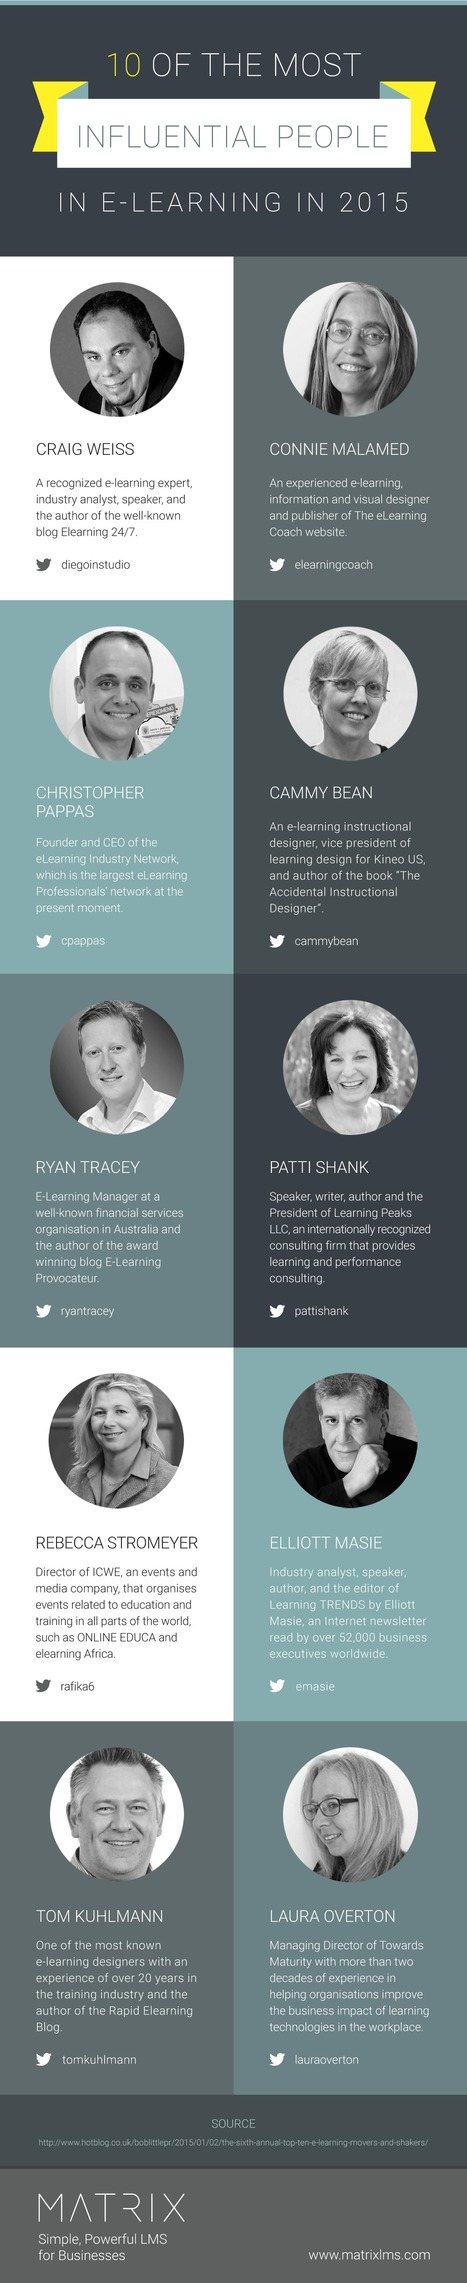 Top 10 Most Influential People in eLearning in 2015 Infographic - e-Learning Infographics | Pedalogica: educación y TIC | Scoop.it